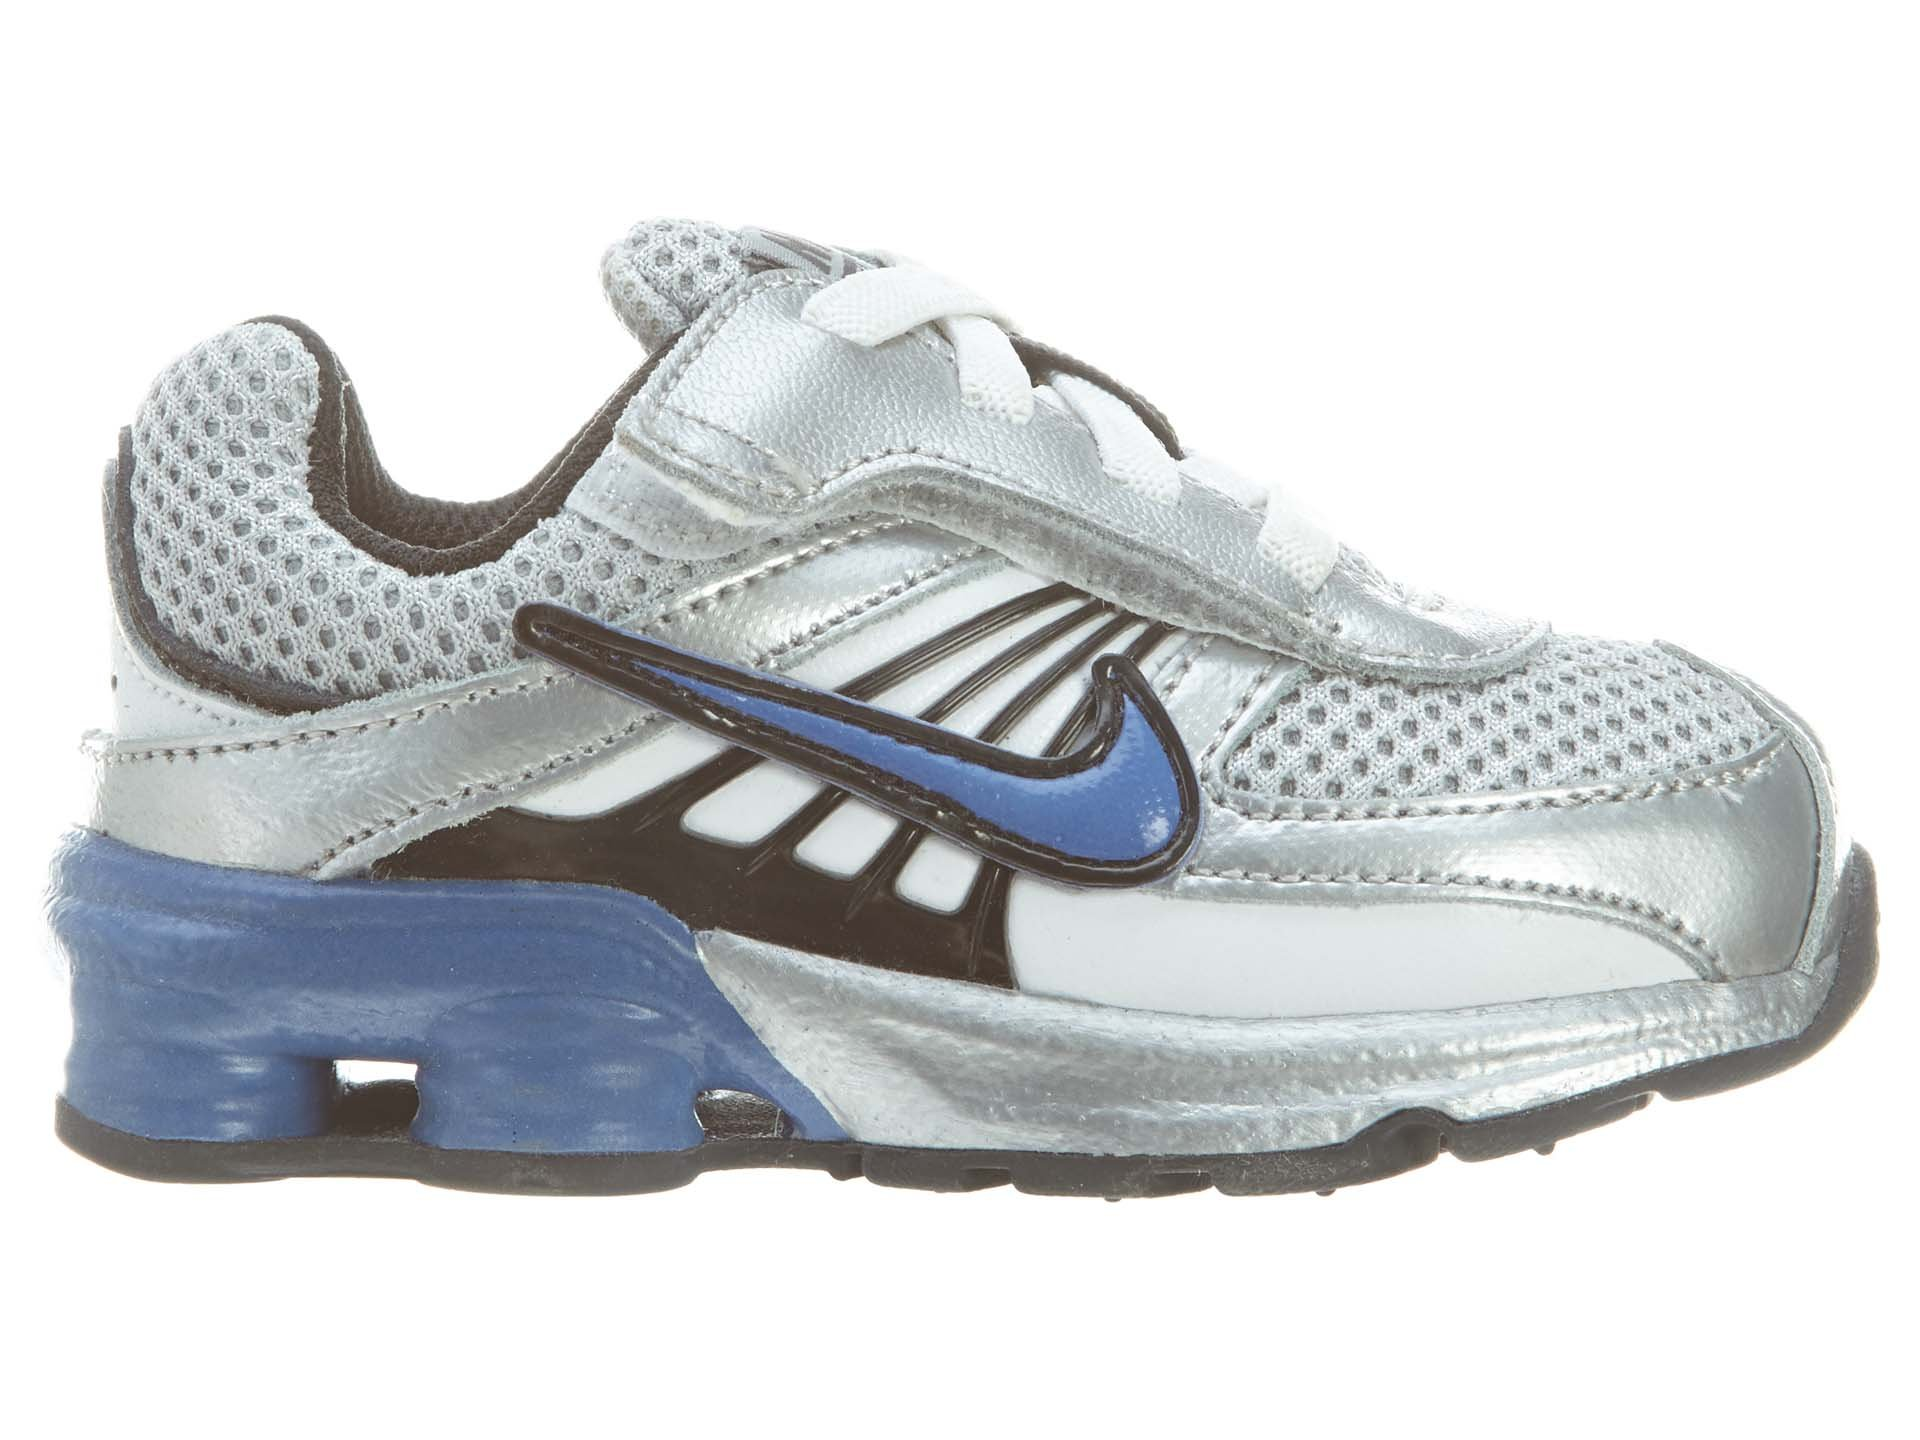 64e4be314712 Galleon - Nike Shox Turbo 8 (Td) Toddlers 344934 Style  344934-041 Size  4